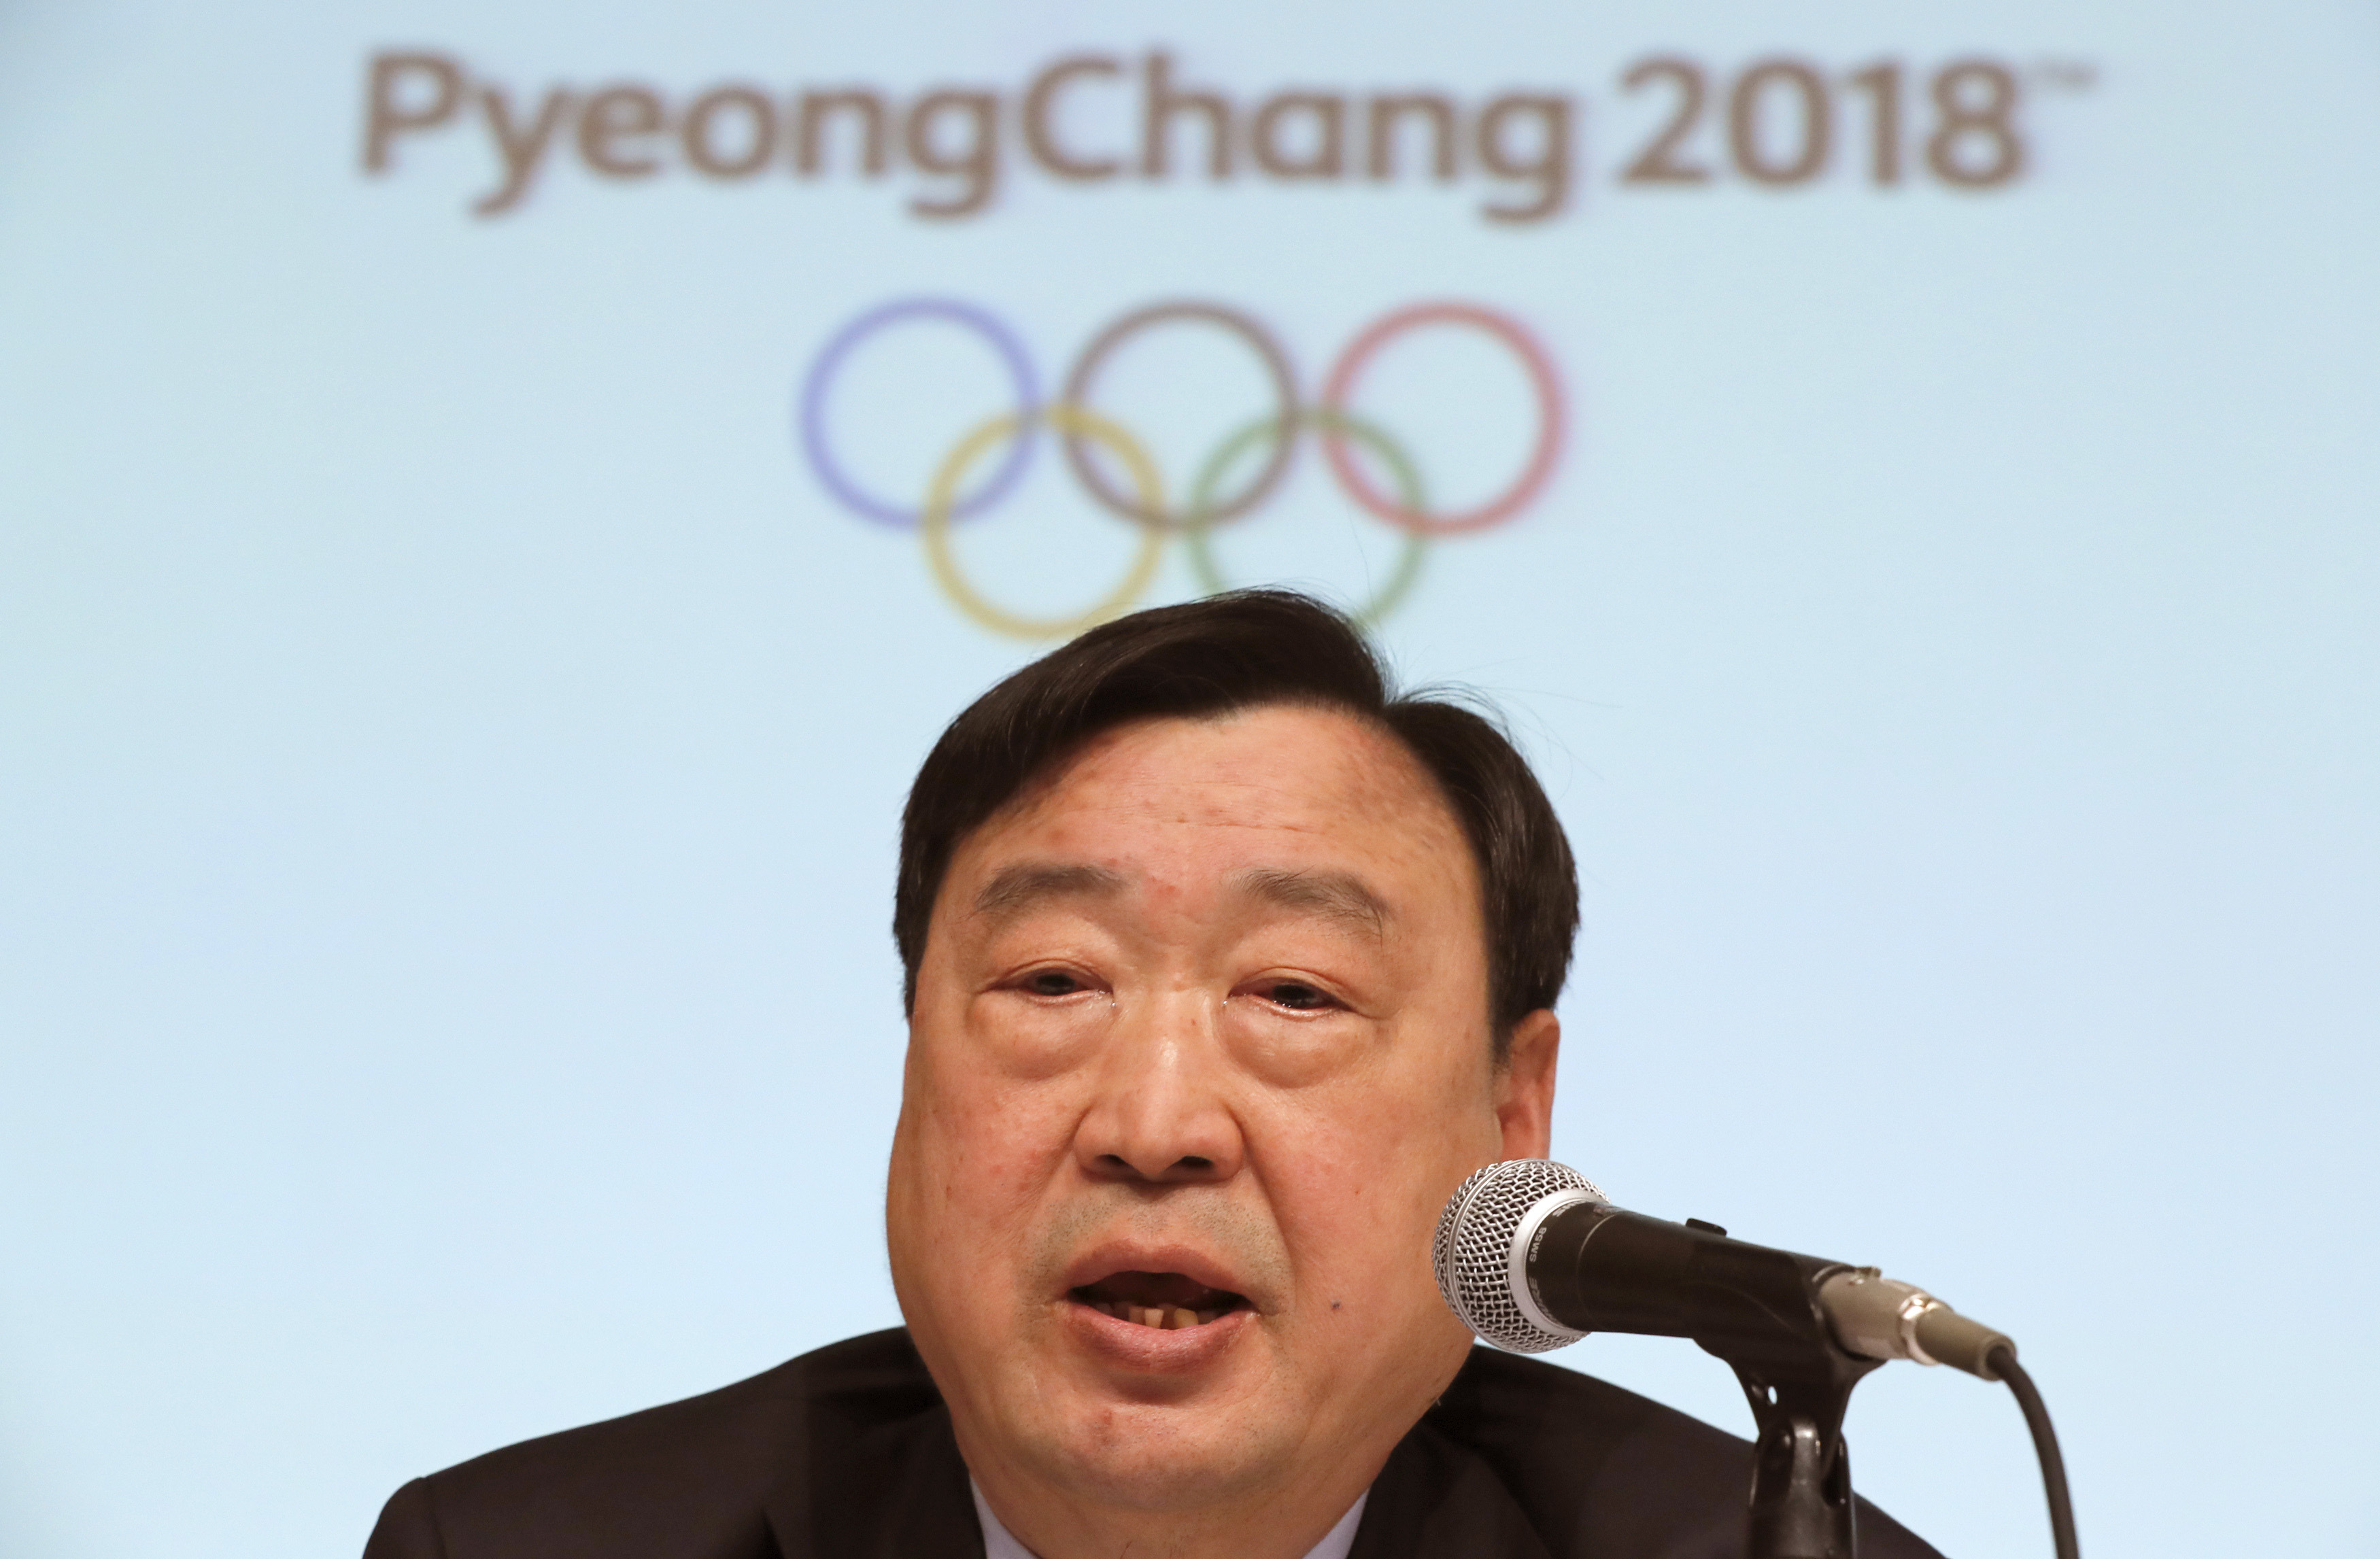 Lee Hee-beom, president and CEO of the Pyeongchang Organizing Committee for the Olympic and Paralympic Winter Games (POCOG), delivers speech during a media conference in Sapporo, northern Japan, Tuesday, Feb. 21, 2017. Lee  expects the 2018 Olympics to us